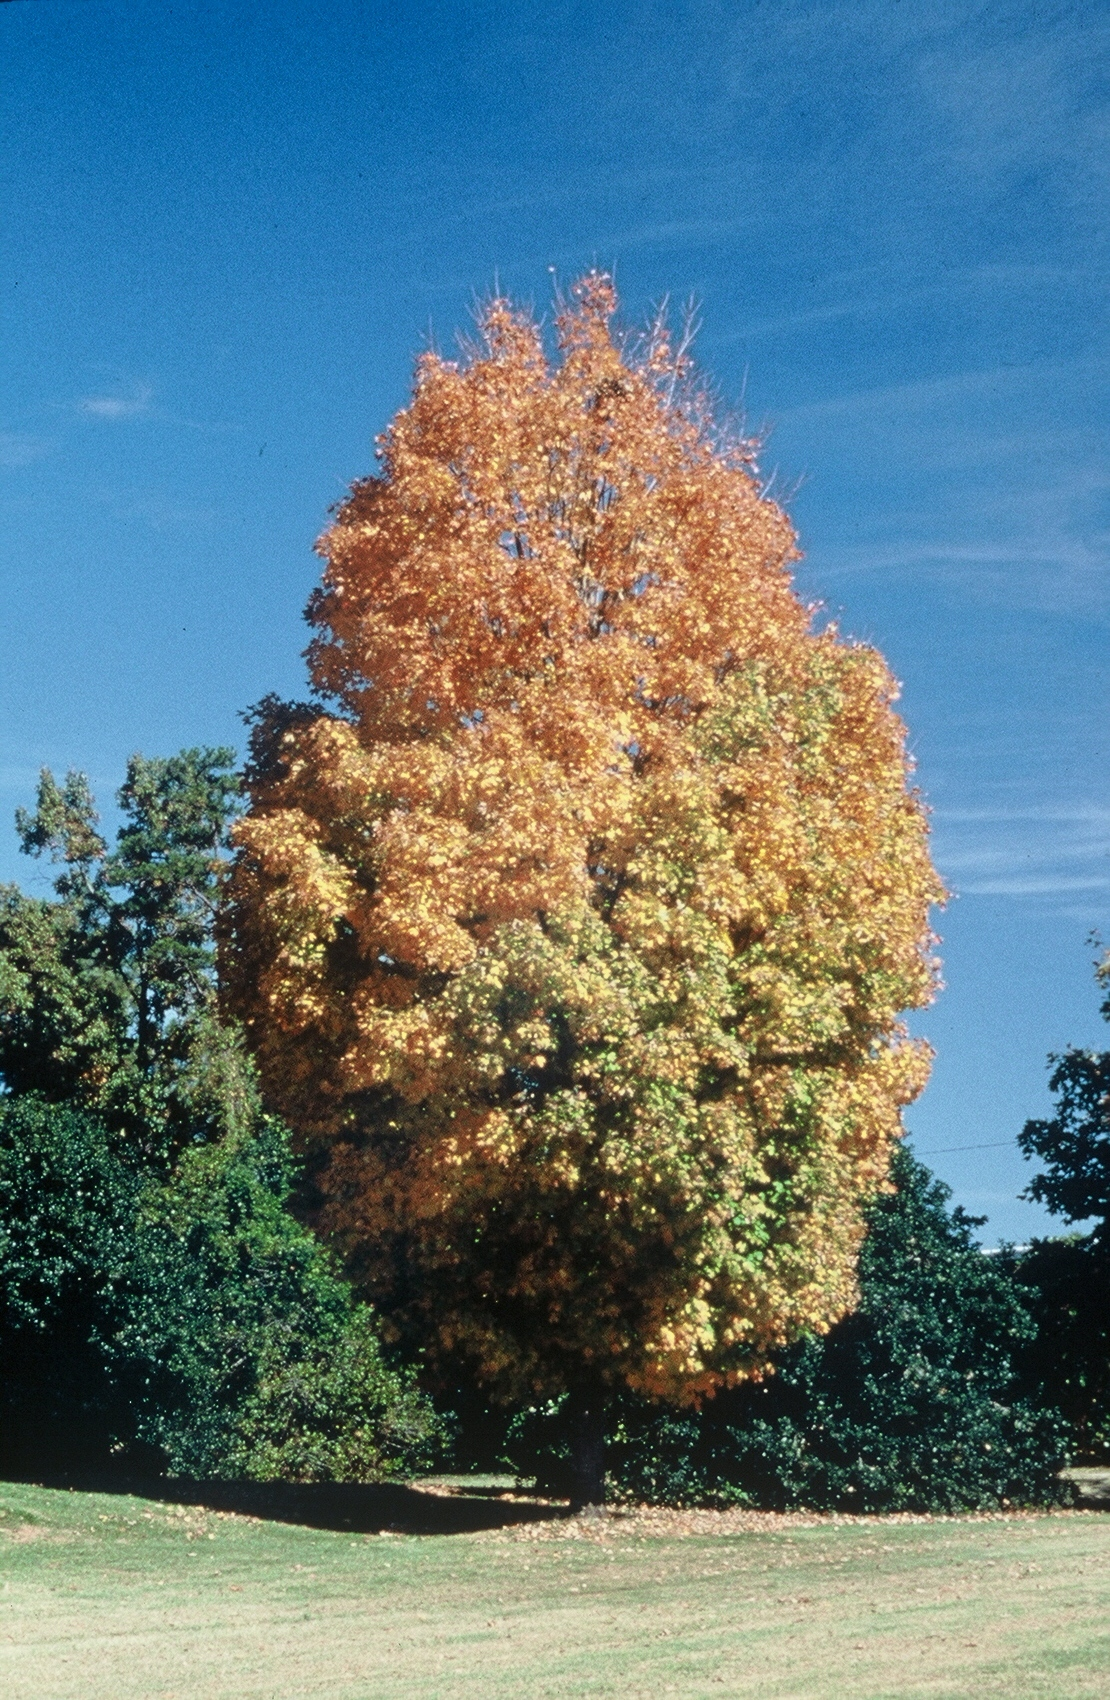 Steeple-Sugar-Maple-Acer-saccharum-fall-color-habit.jpg